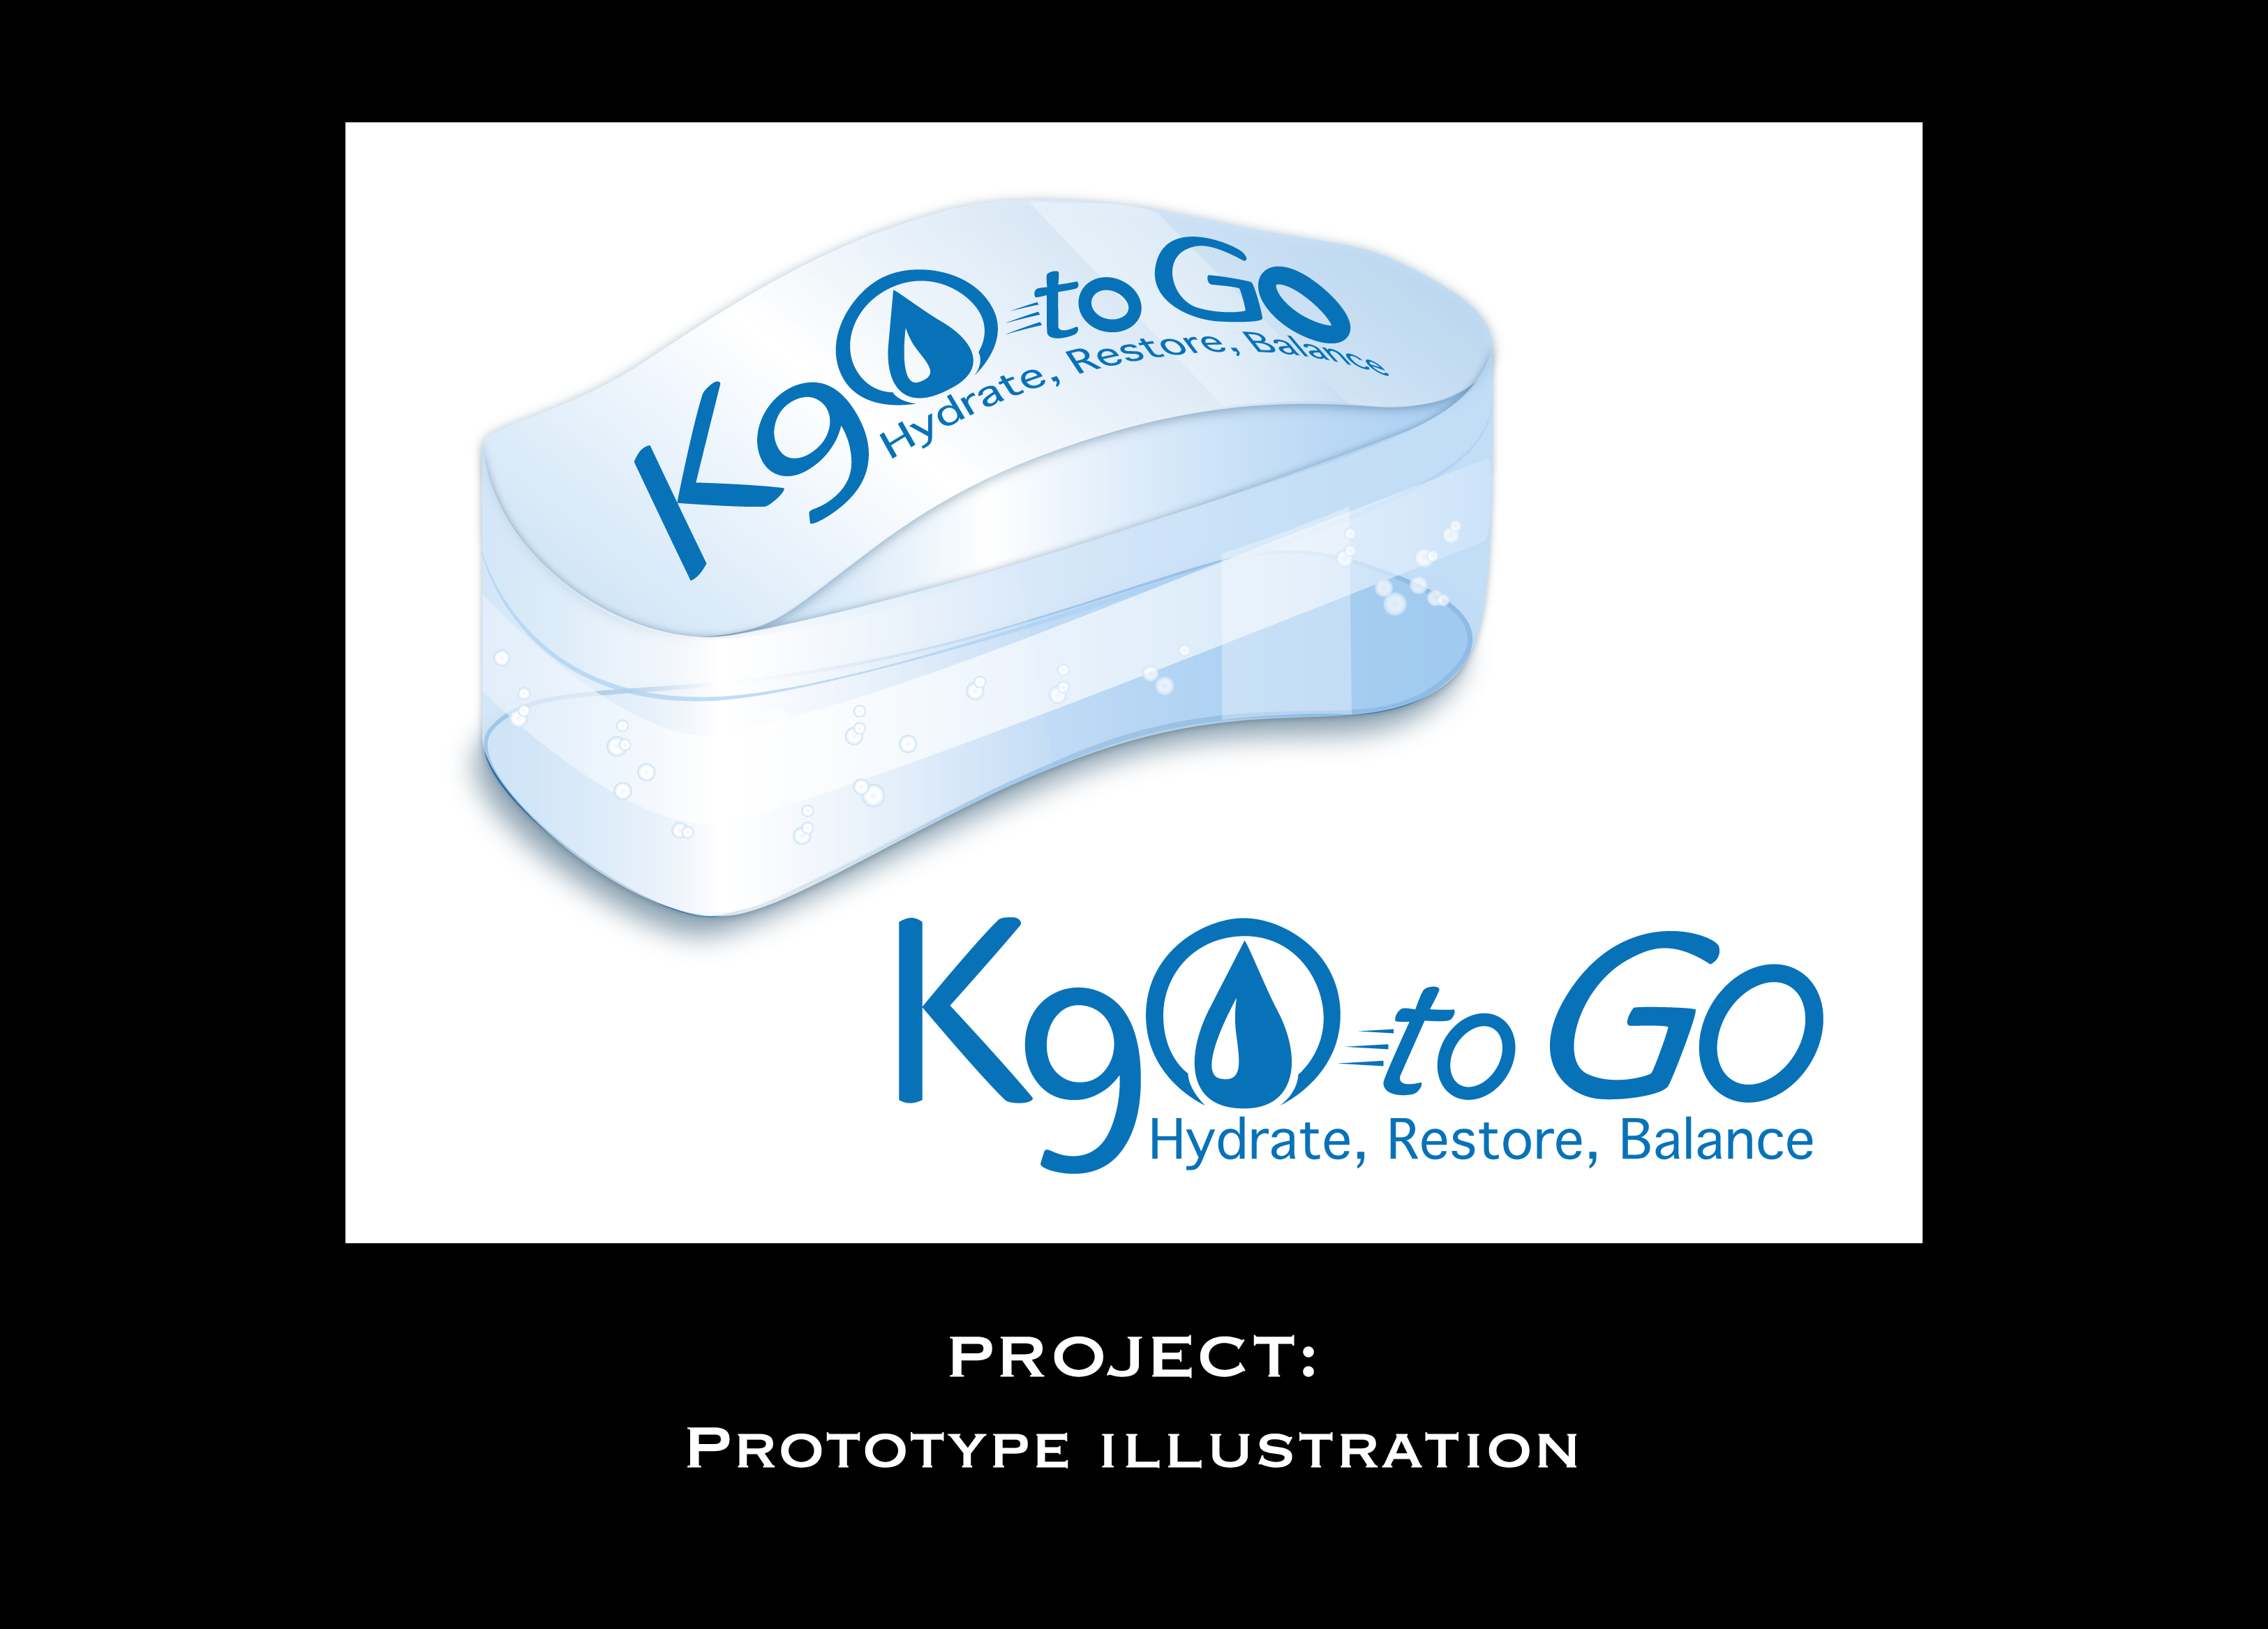 K9 to G0 prototype illustration